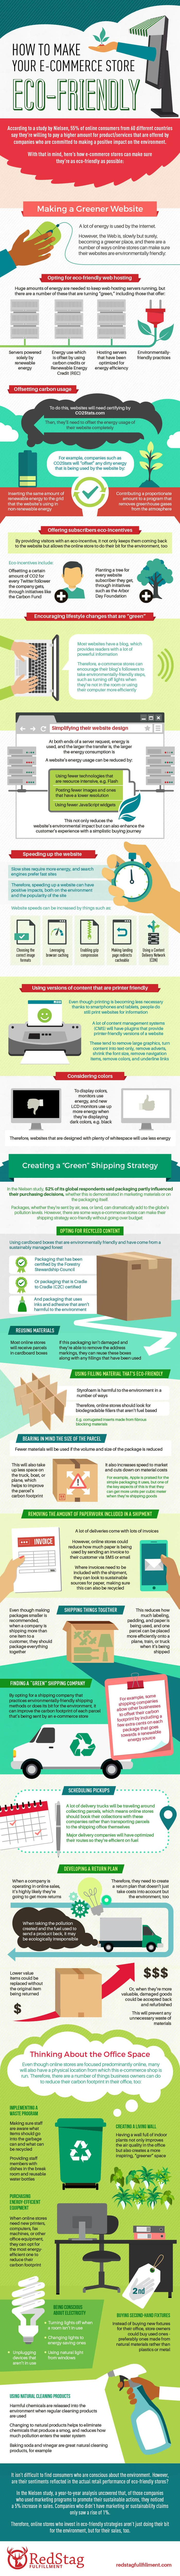 How to make your ecommerce store eco-friendly